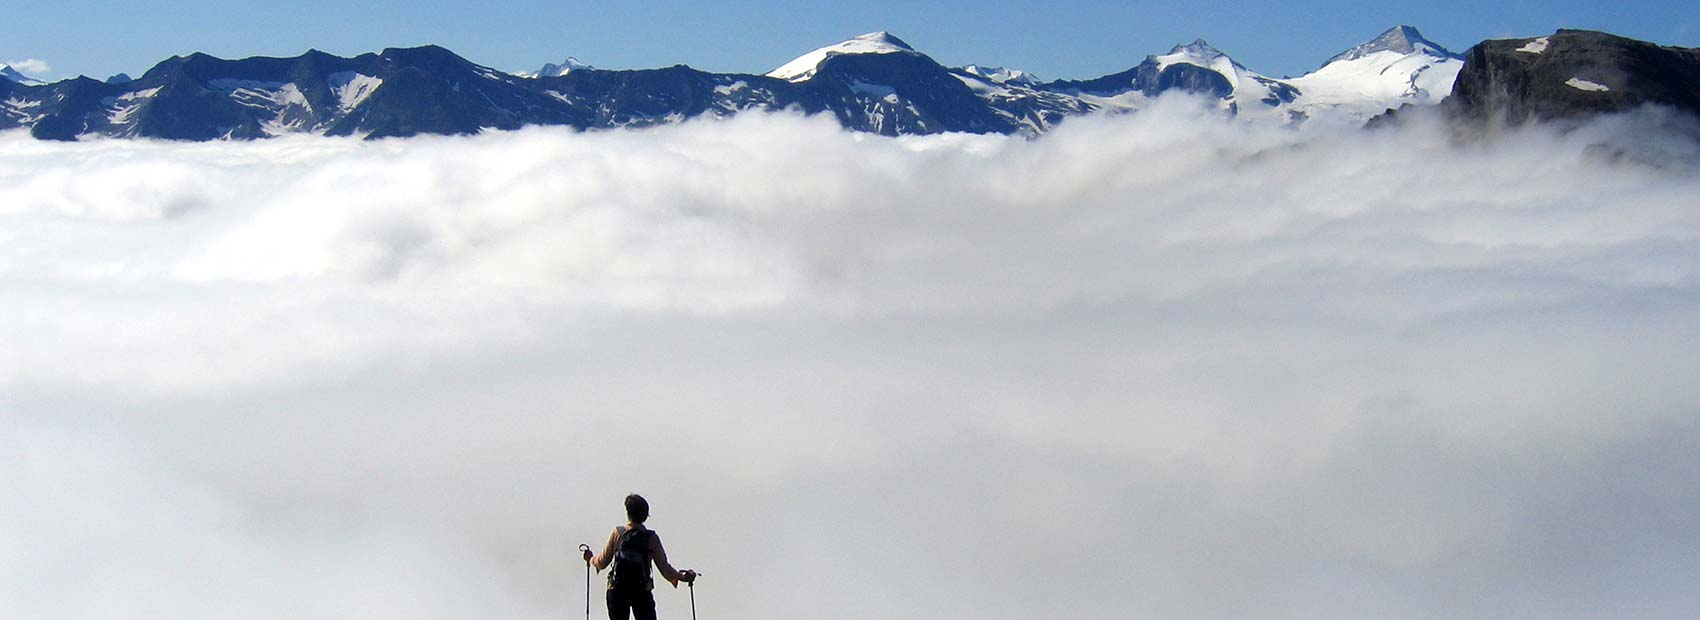 above the clouds the freedom is boundless